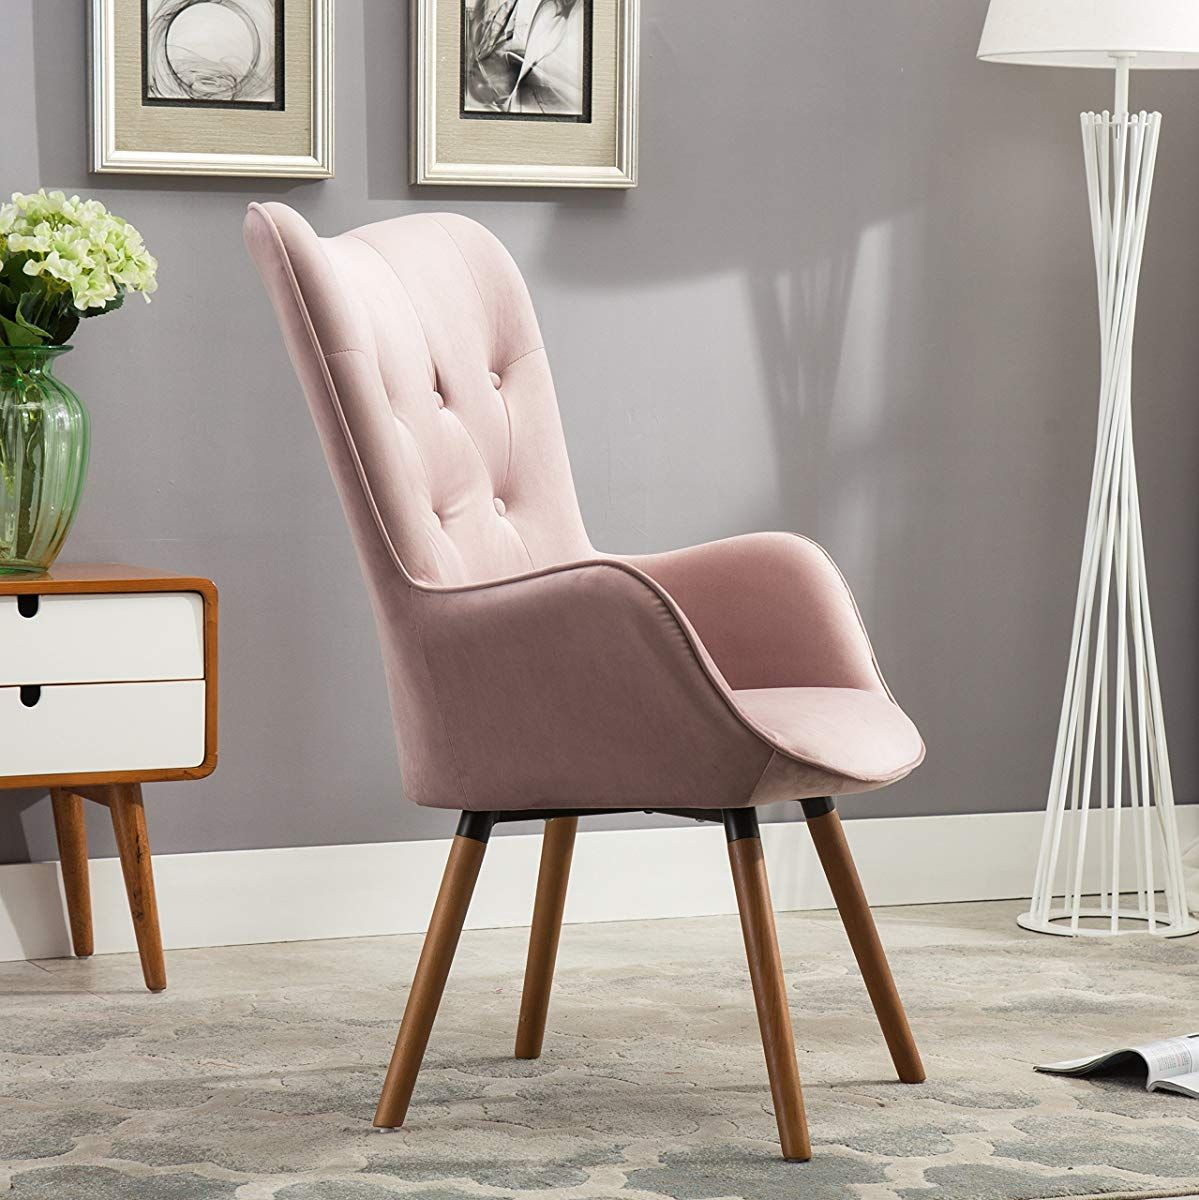 Dining Room Accent Pieces: Tufted Button Back Accent Chair, Mauve In 2019